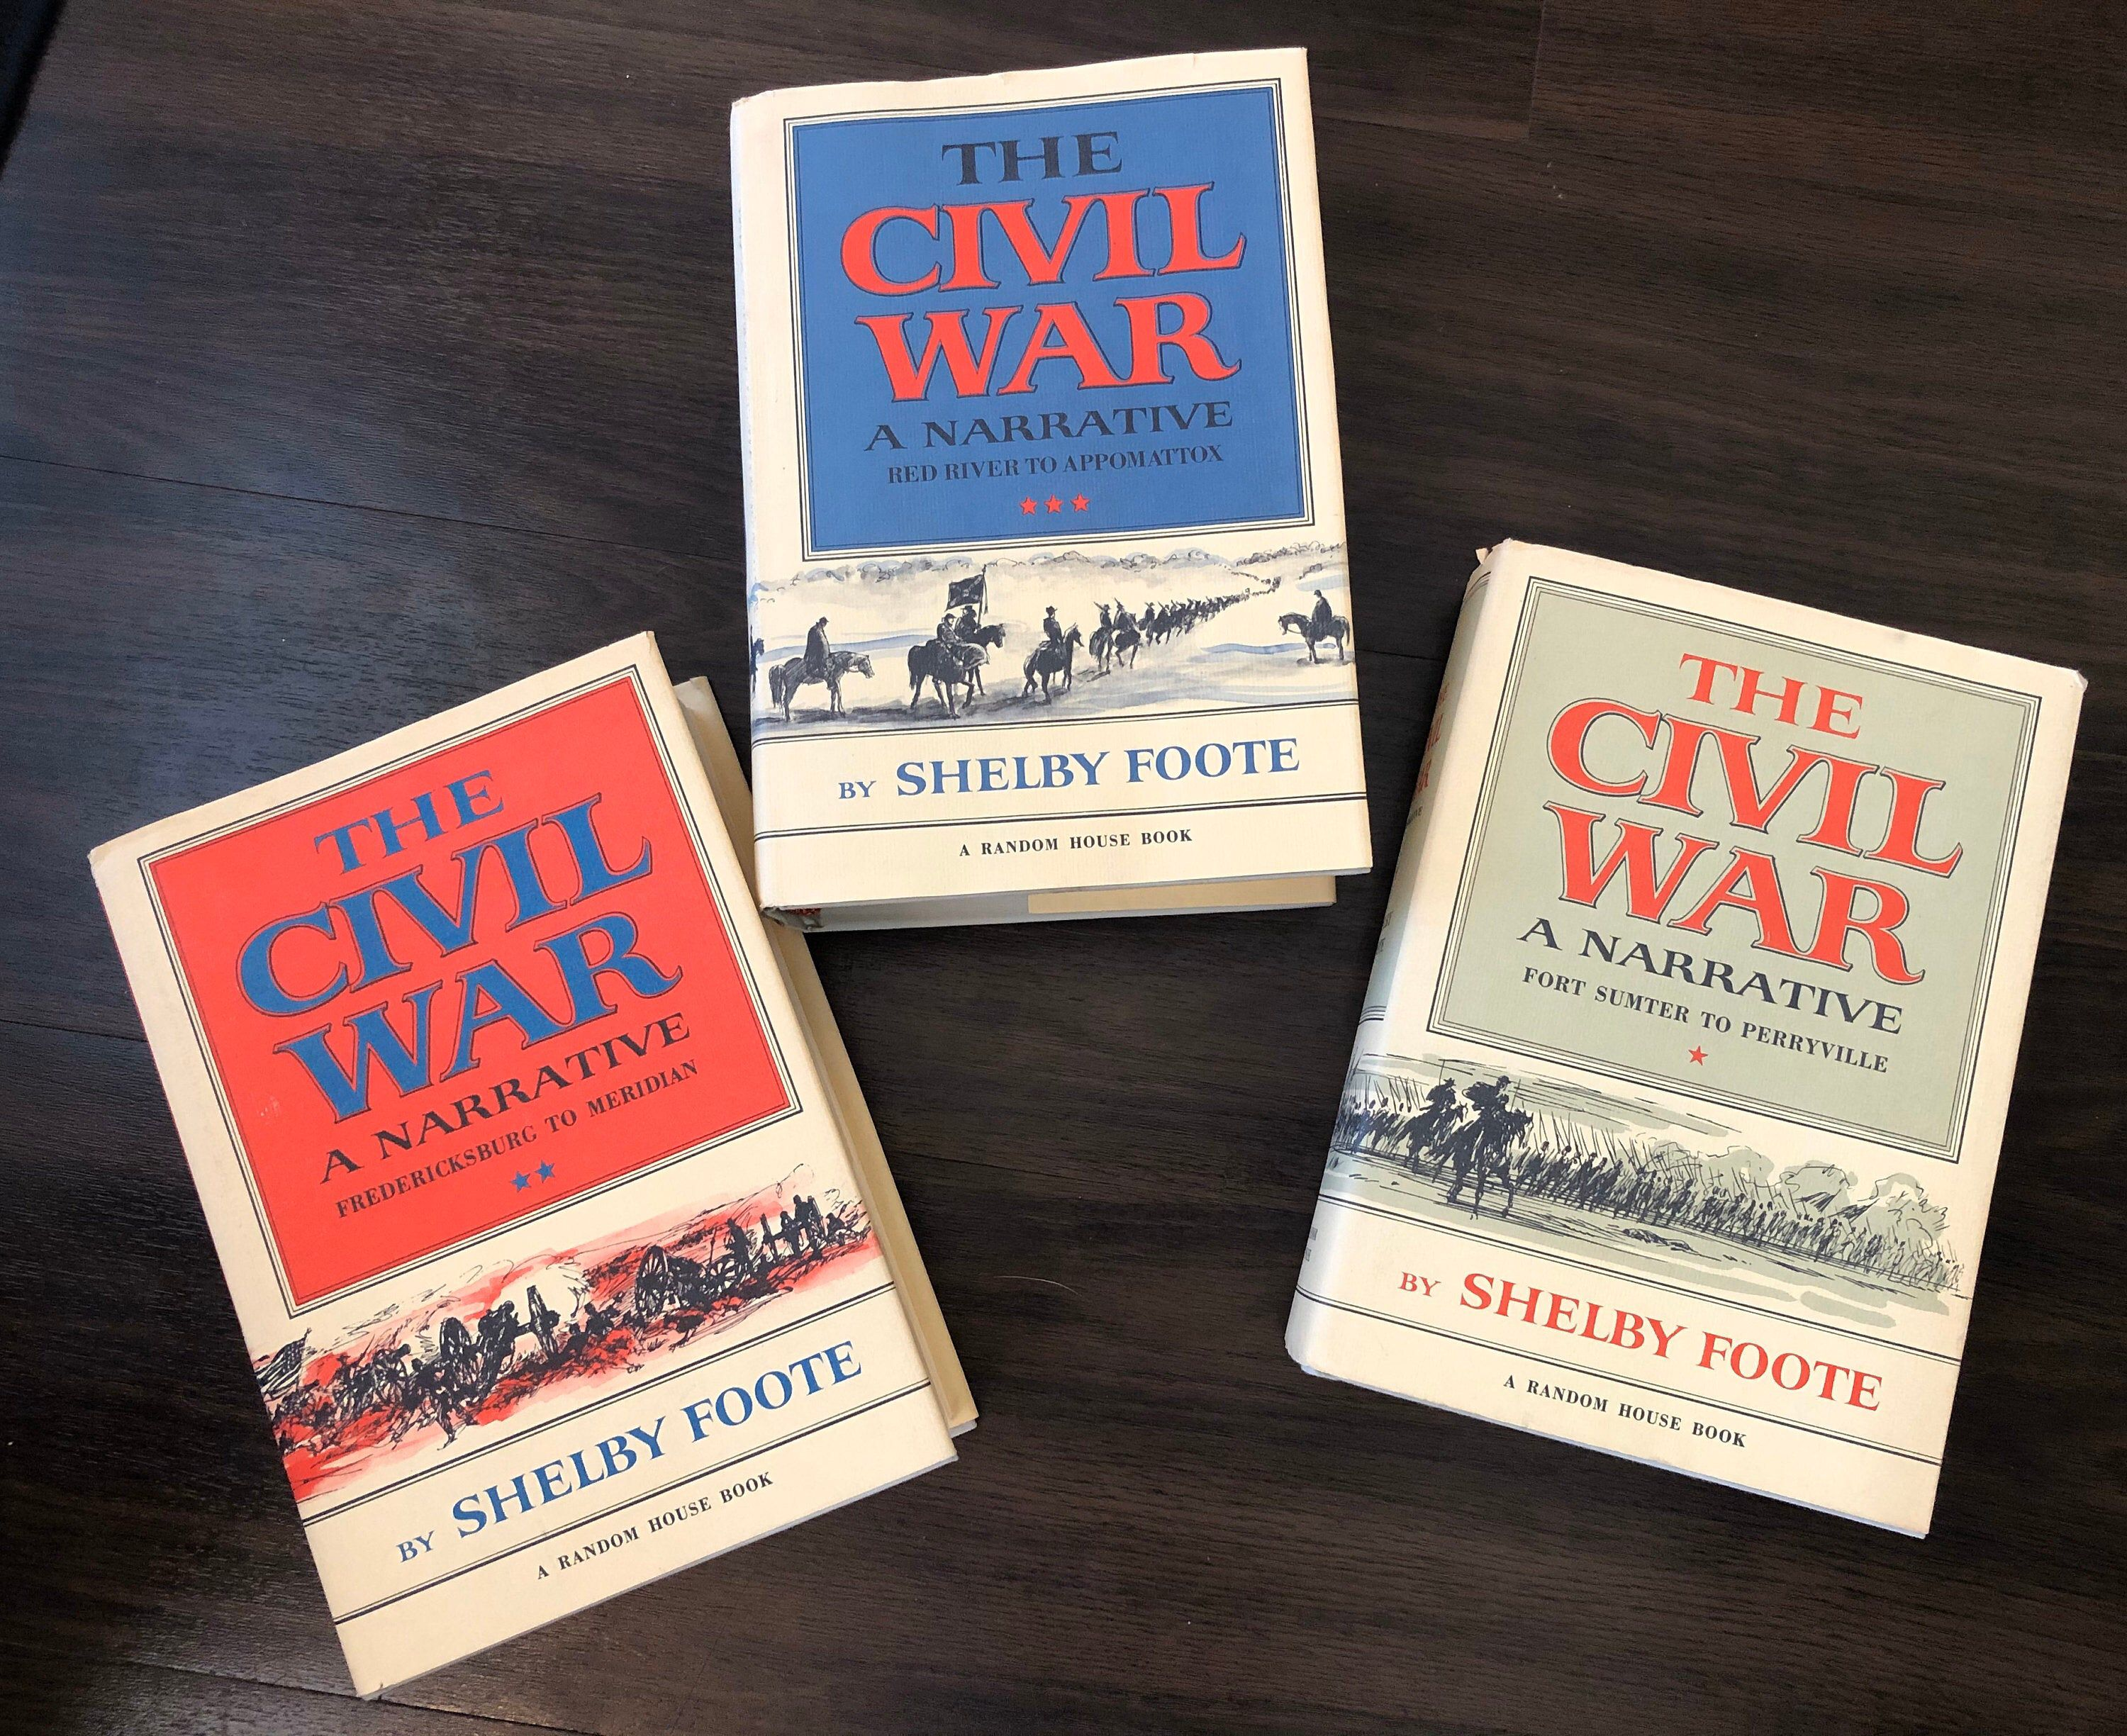 Civil War Books Narrative Set Shelby Foote First Editions Etsy Civil War Books Book Set Civil War History